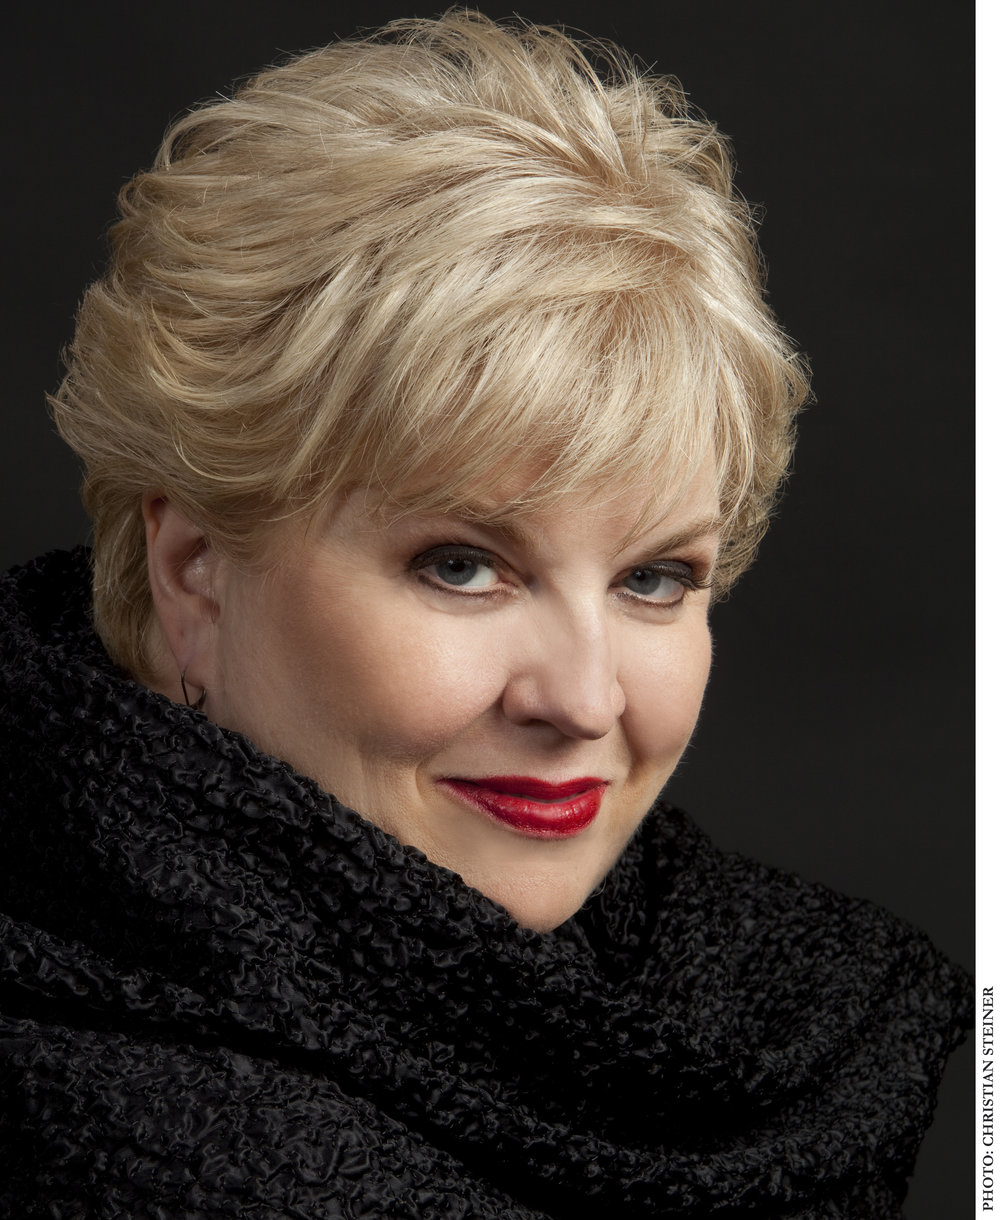 Grammy Award-winning American soprano, Christine Brewer